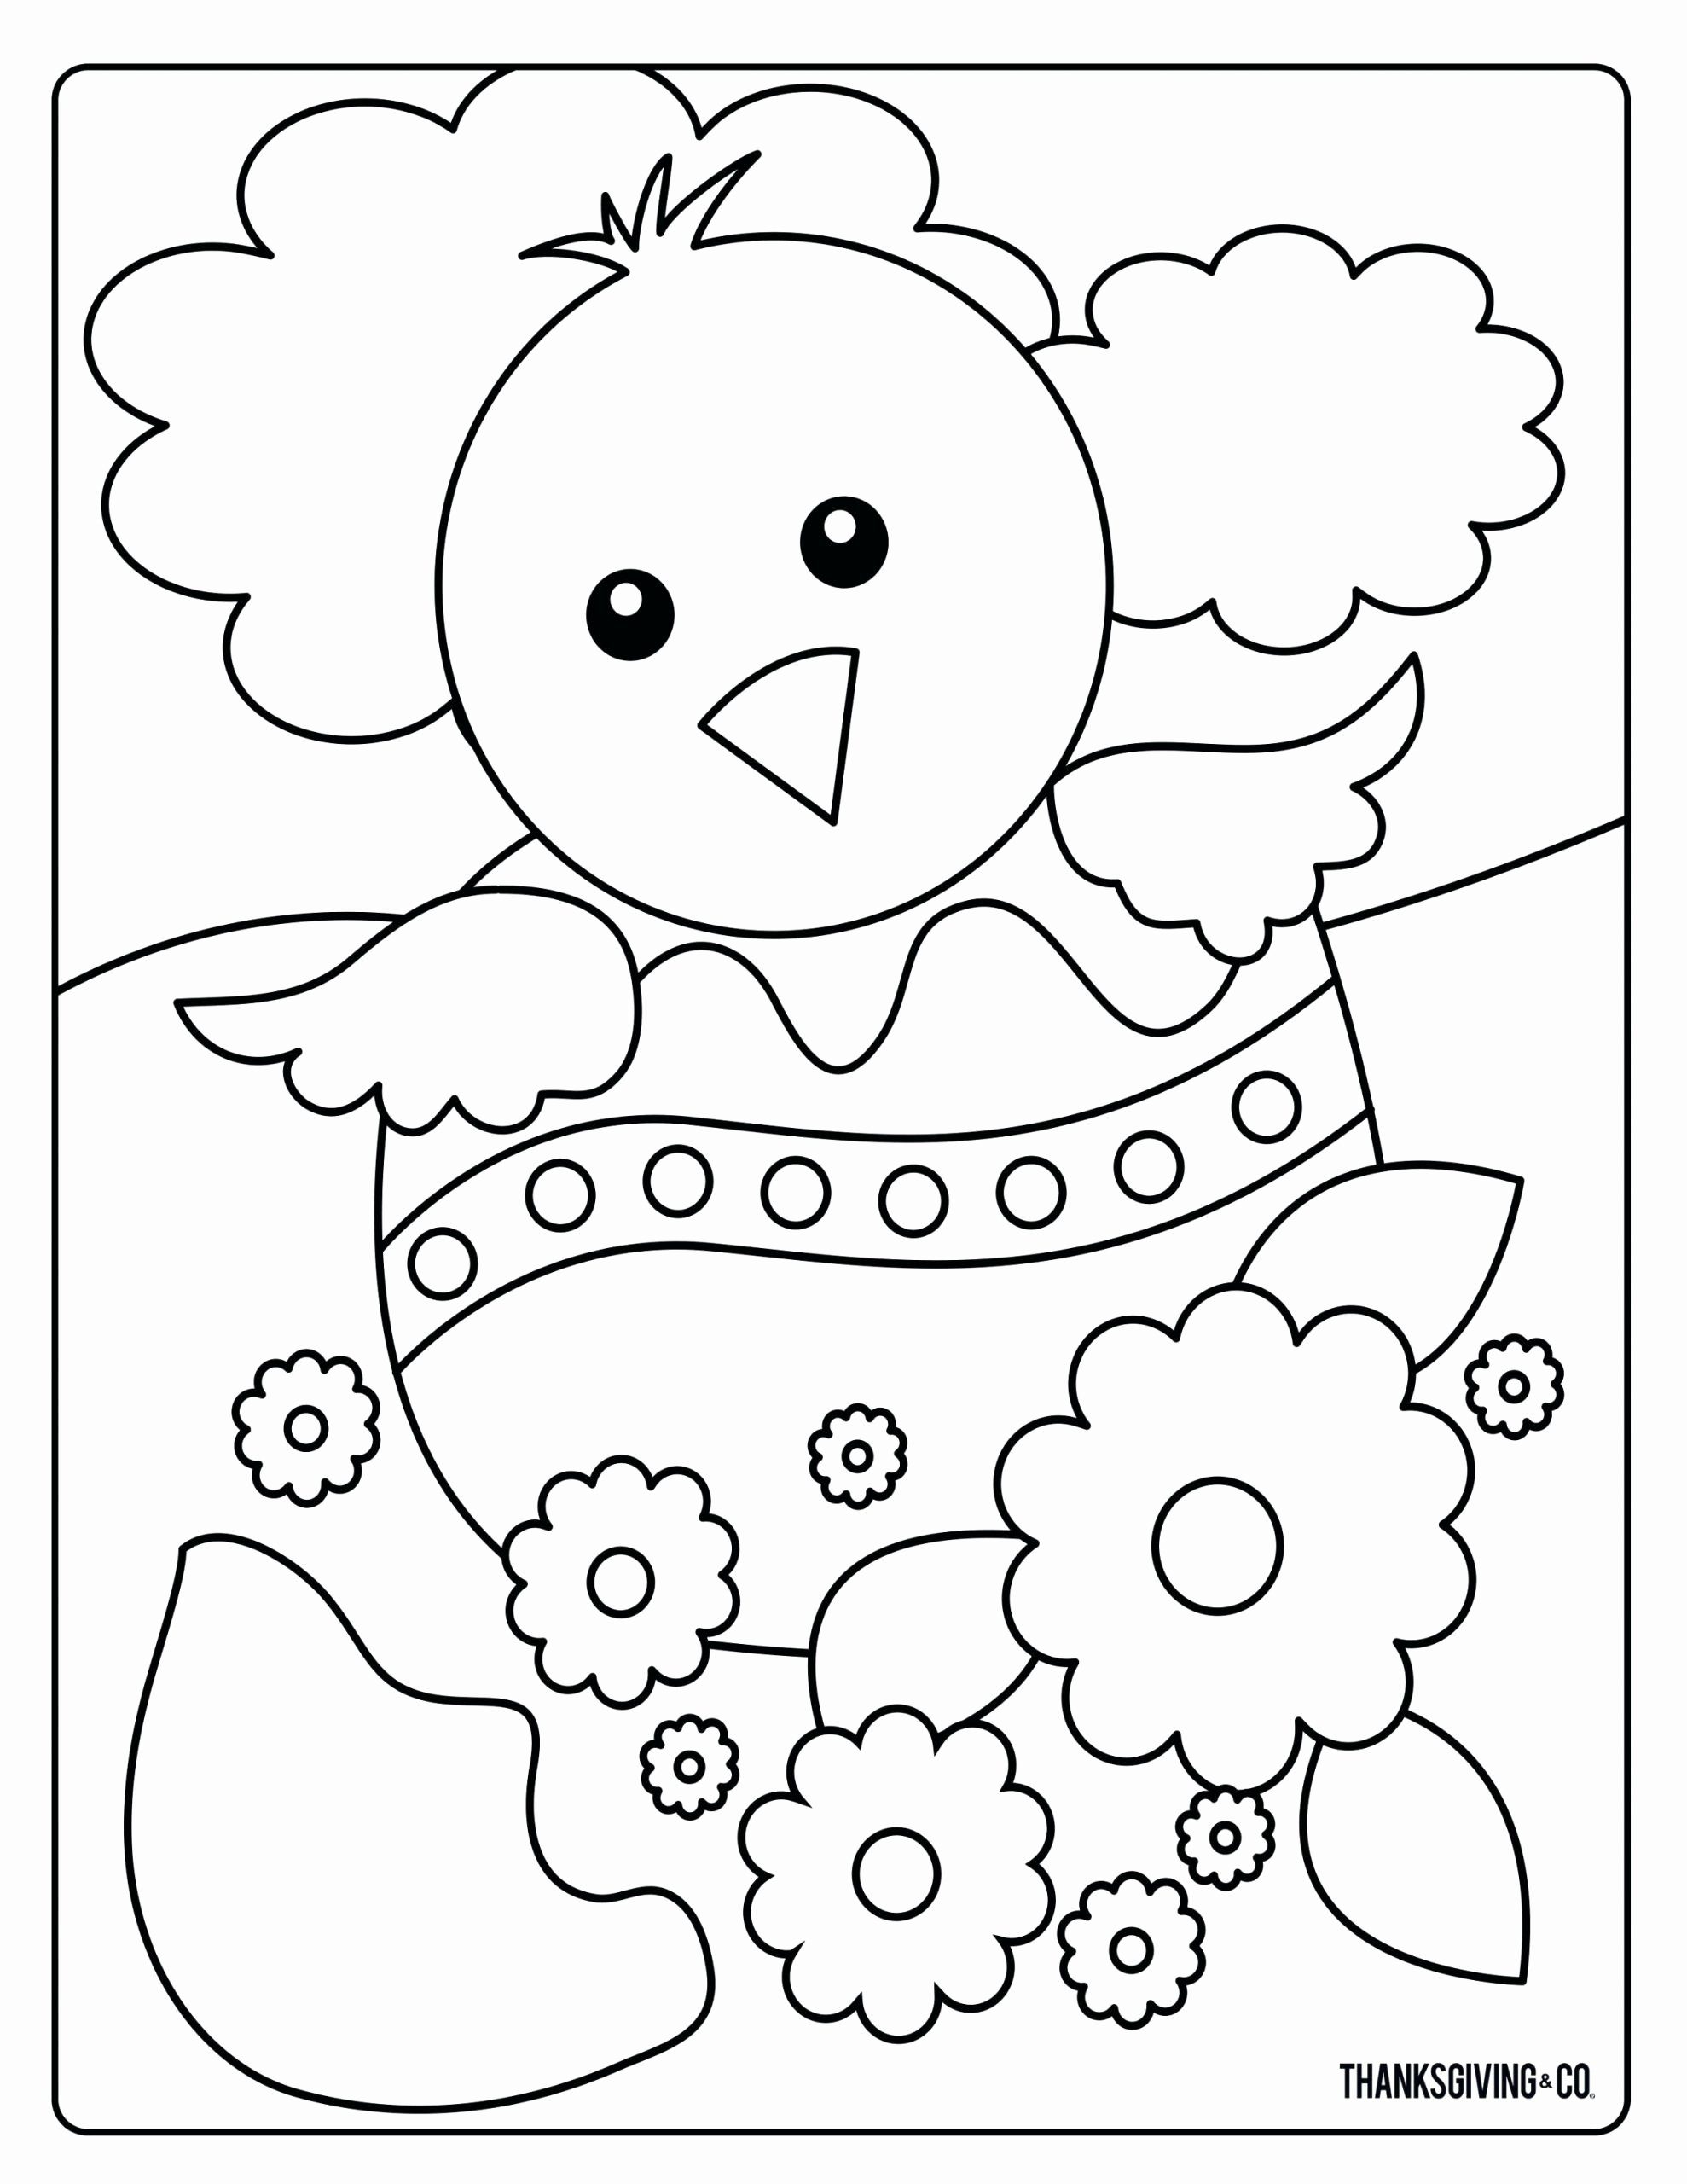 Drawing Worksheets for Preschoolers Fresh Worksheets Color Purple Worksheets for Preschool Worksheet